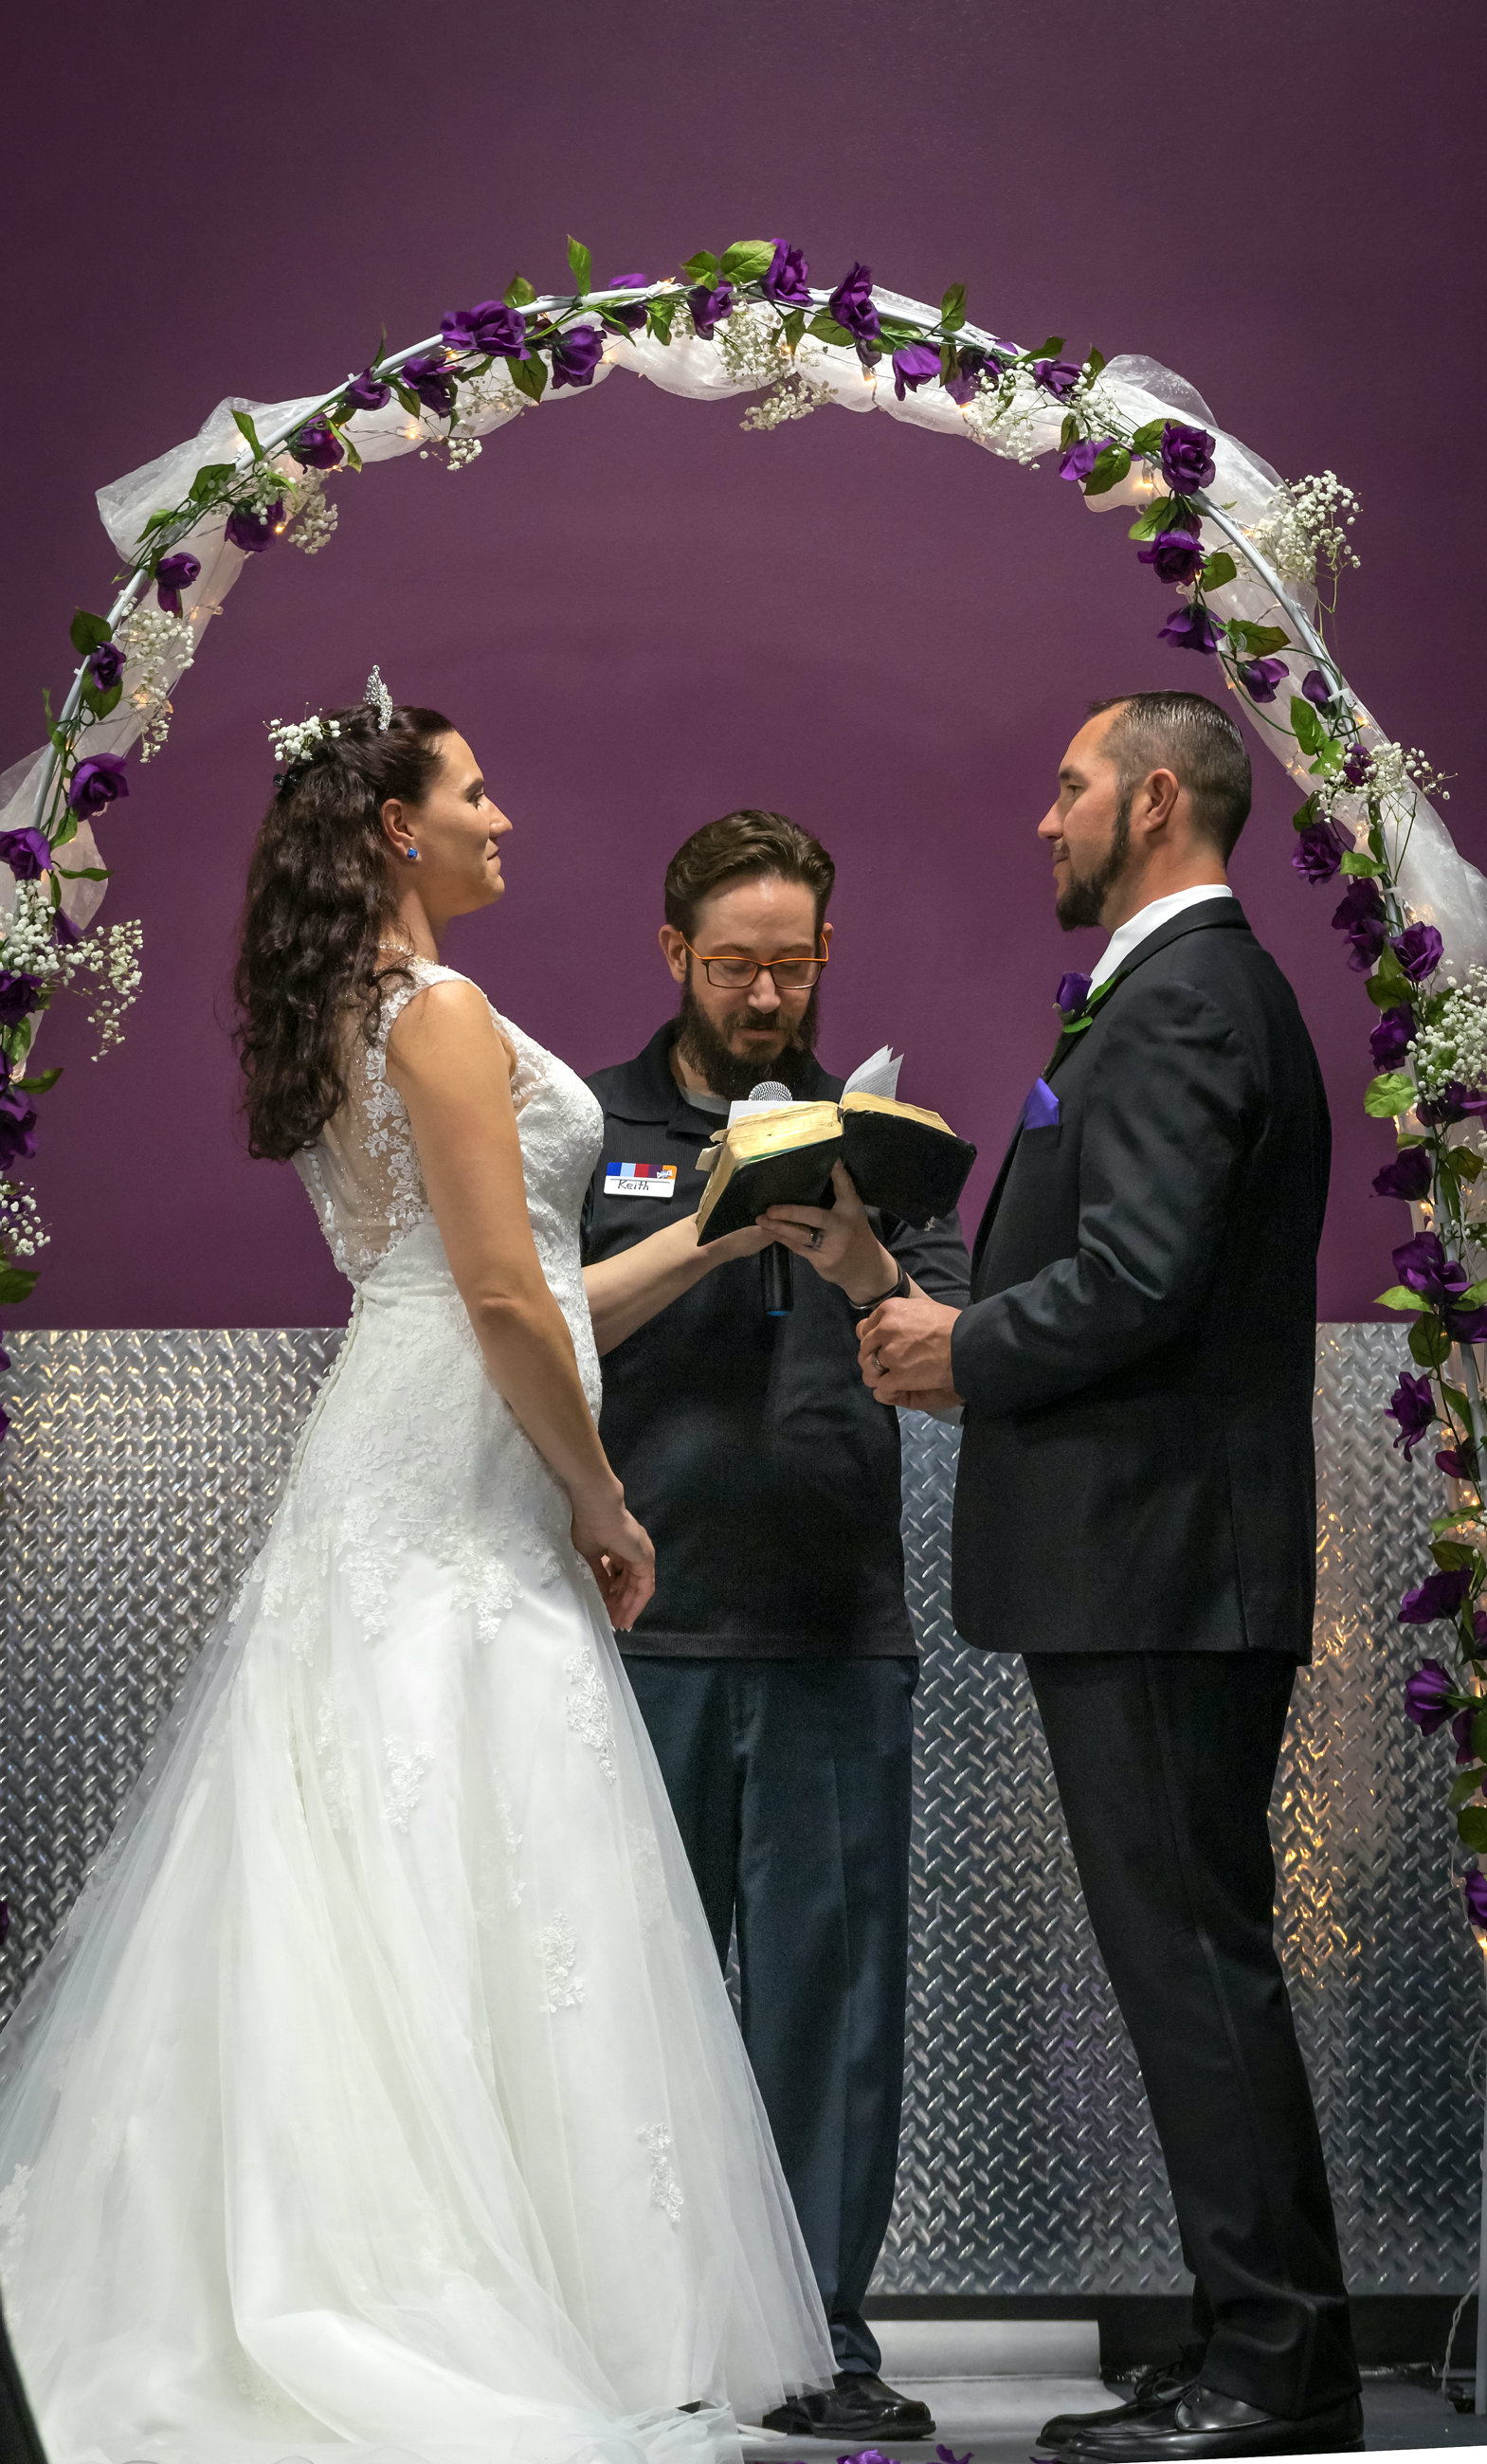 The couple got hitched at their local gym, which they say has helped them overcome their drug addiction. Credit: SWNS